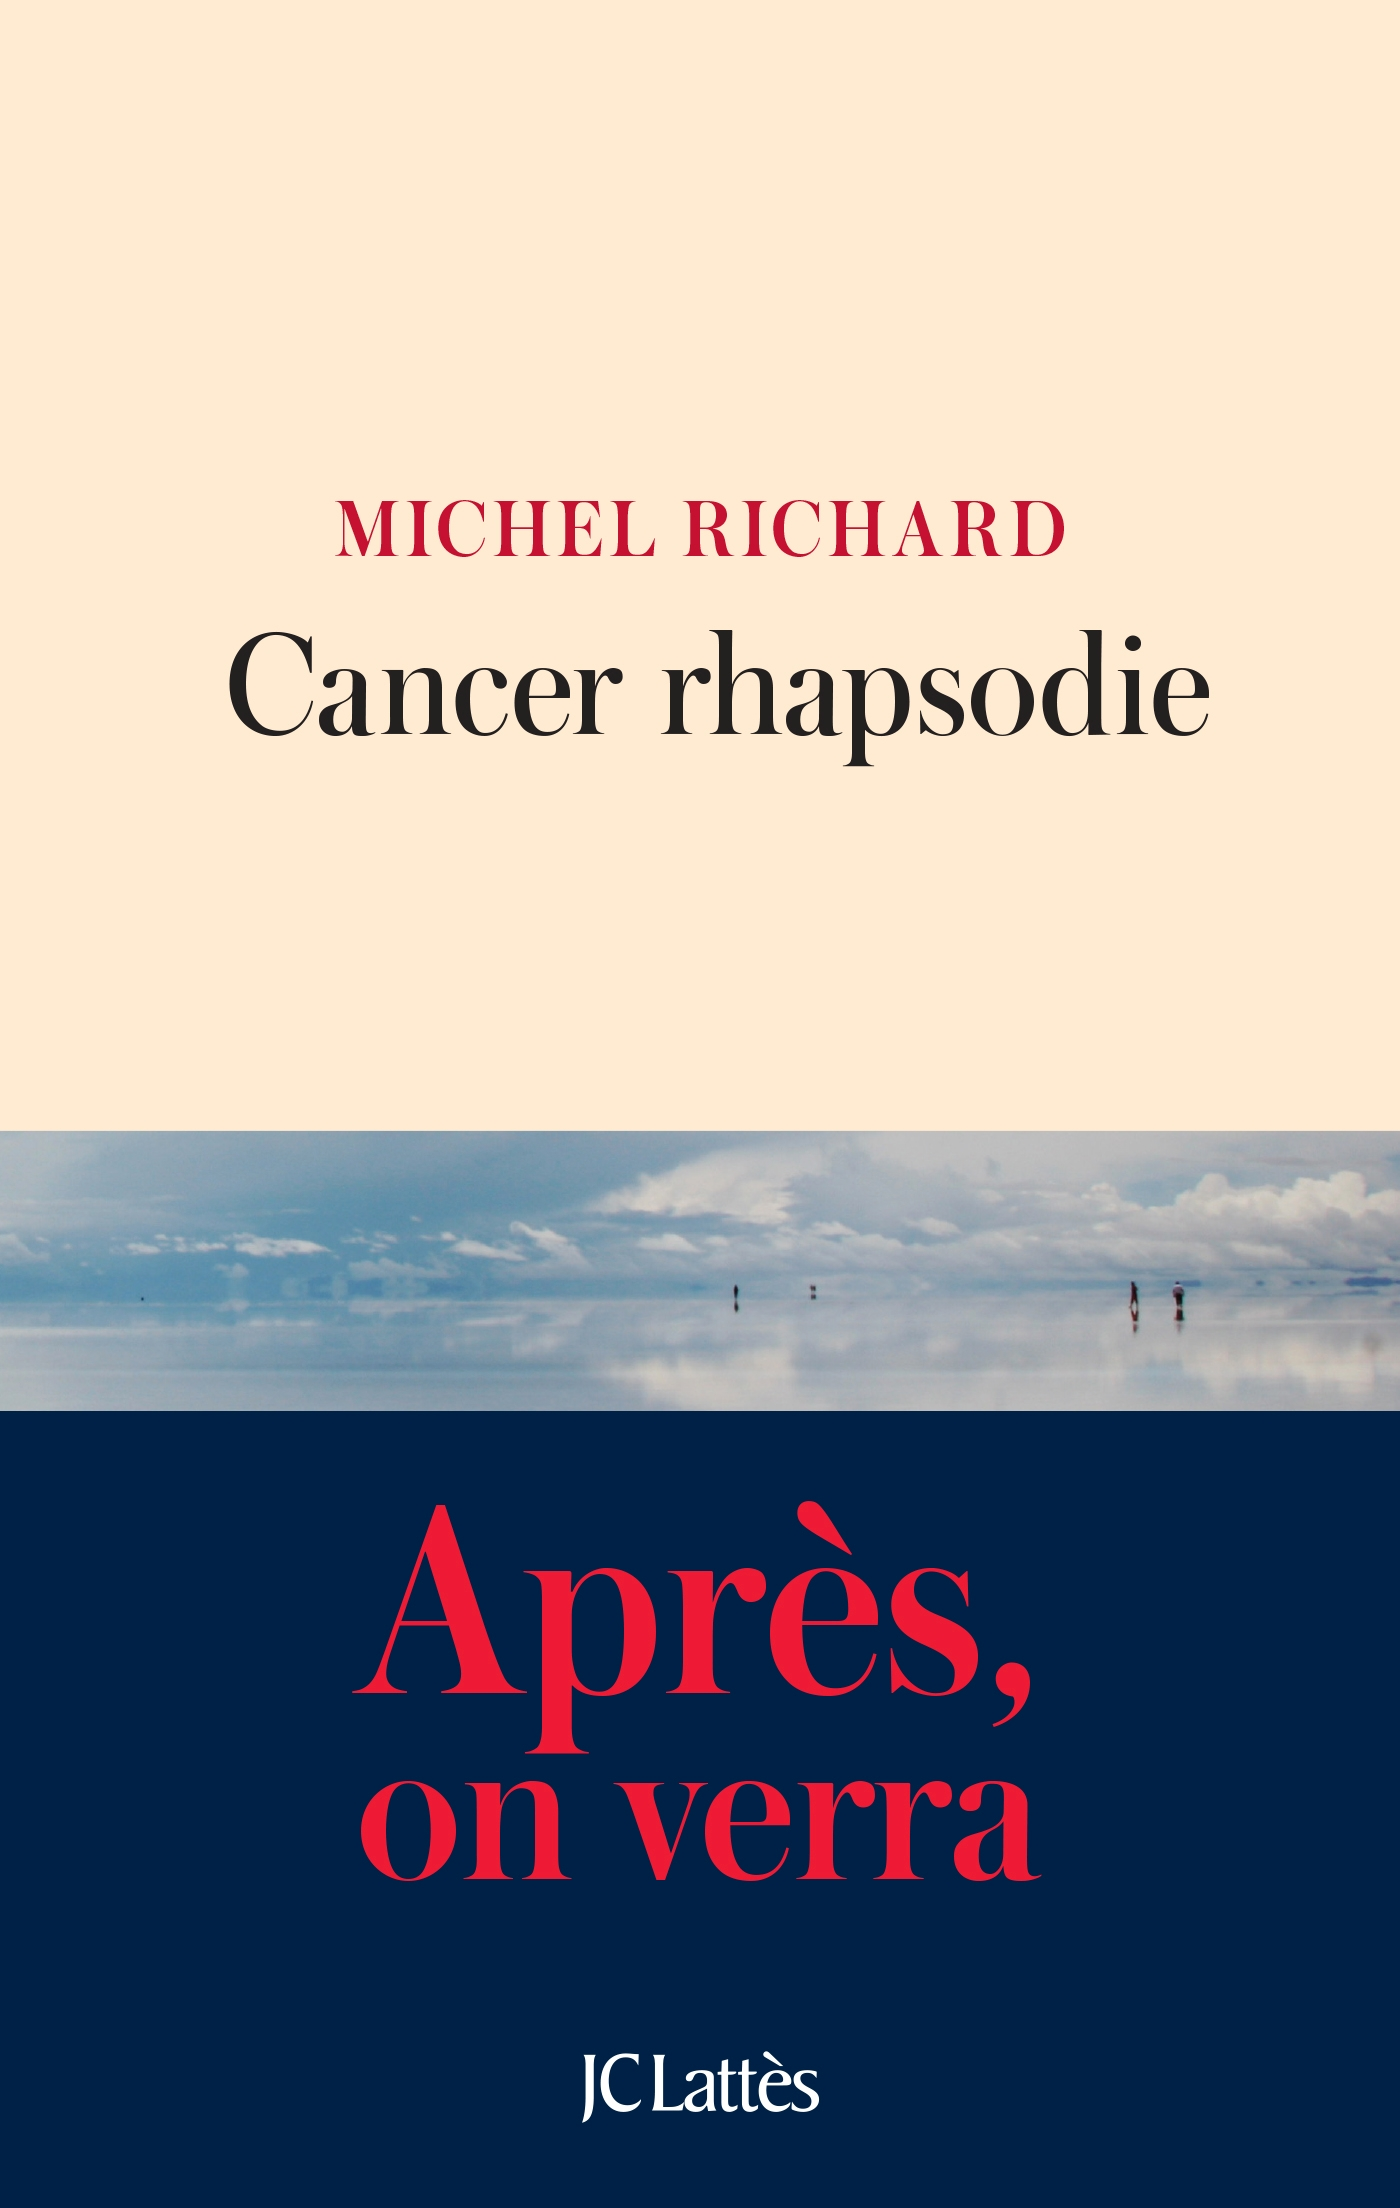 Cancer Rhapsodie